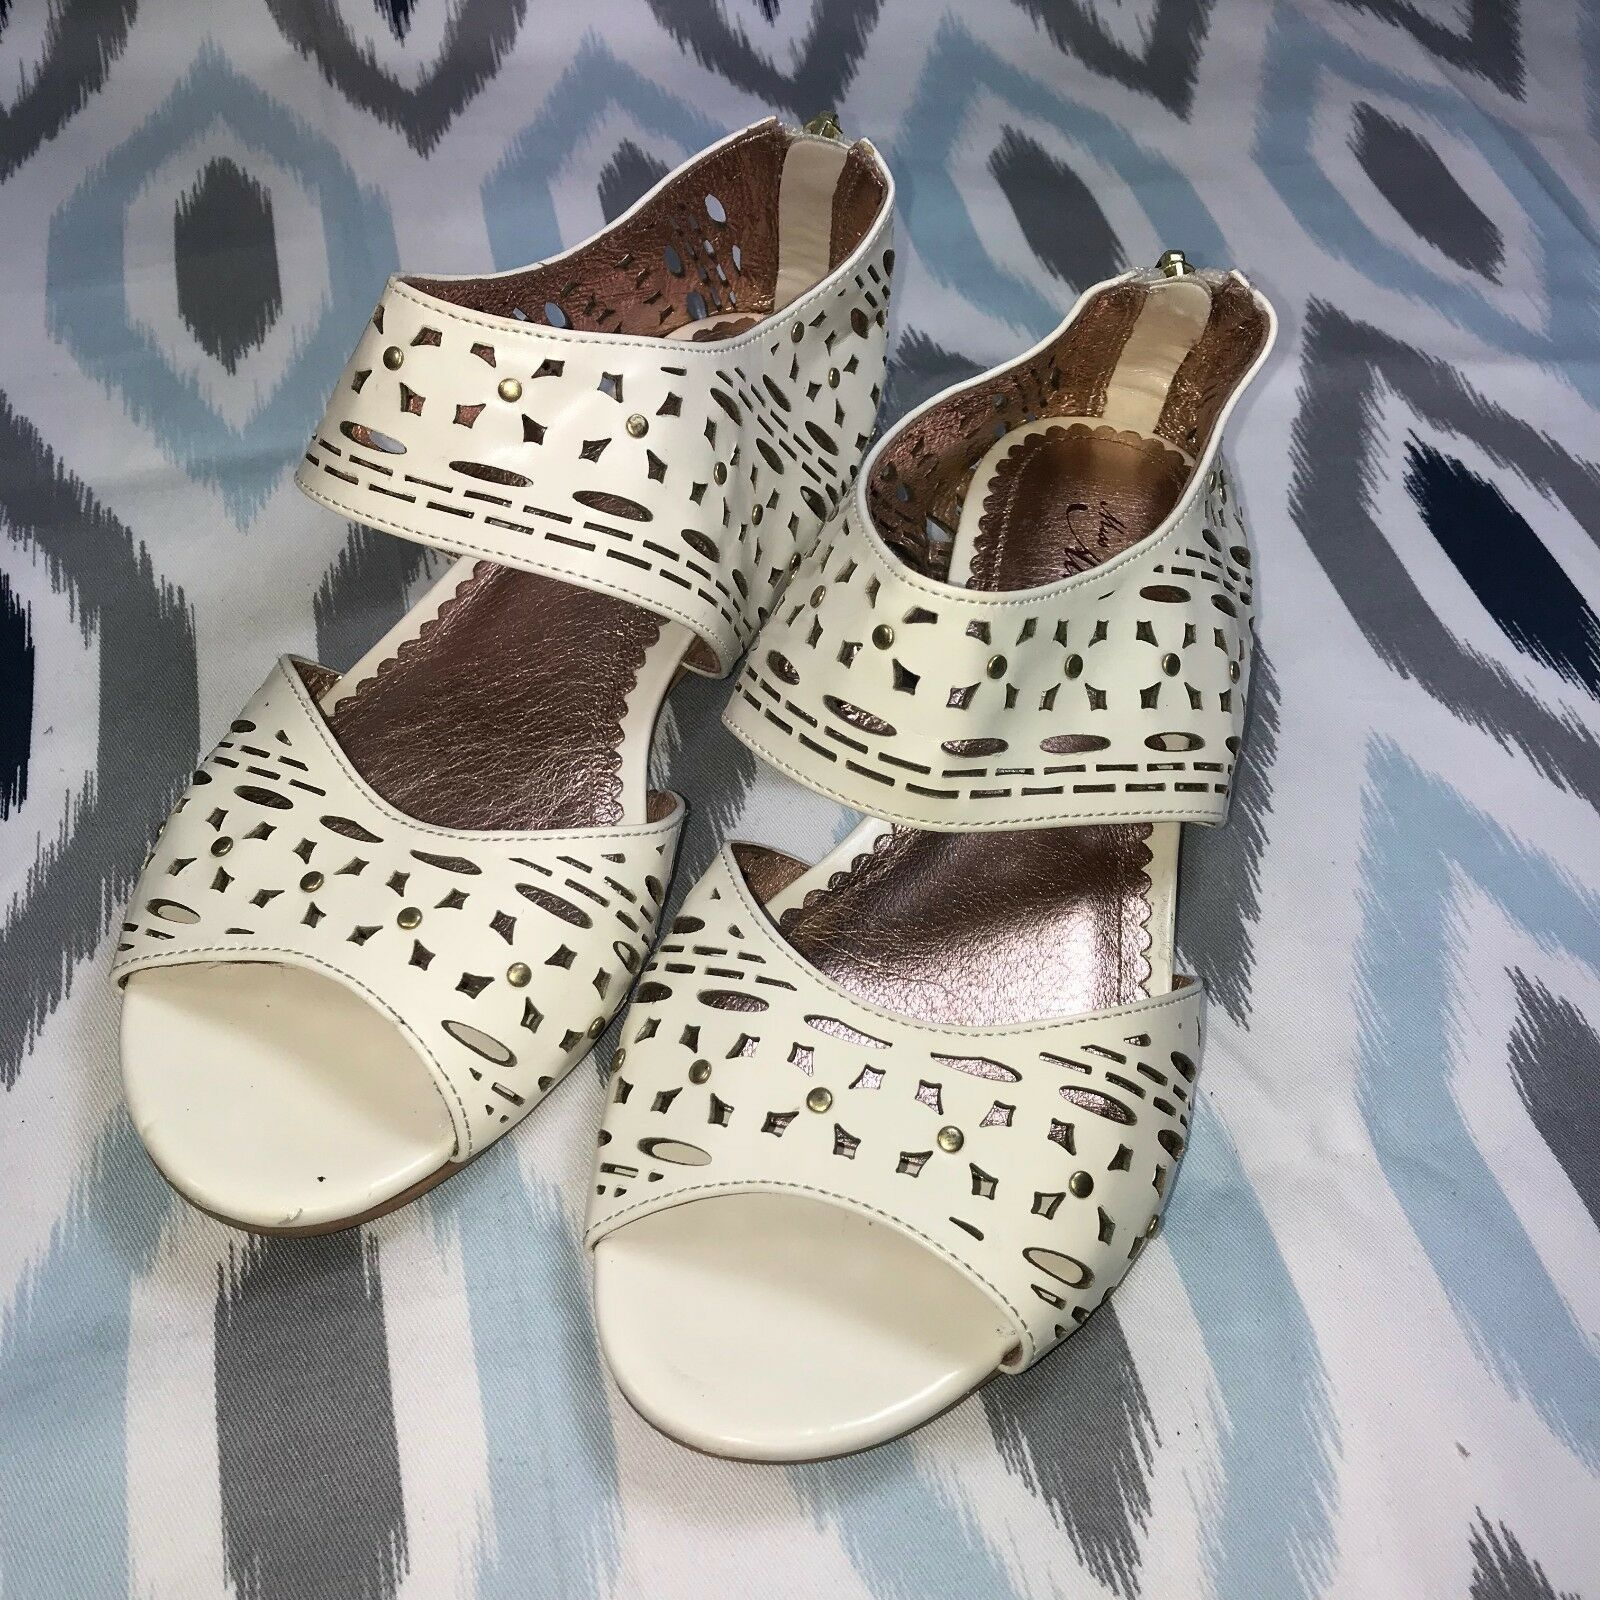 Miss Albright Size 6 6.5 Anthropologie Cream Cutout Sandals Patent Leather Studs